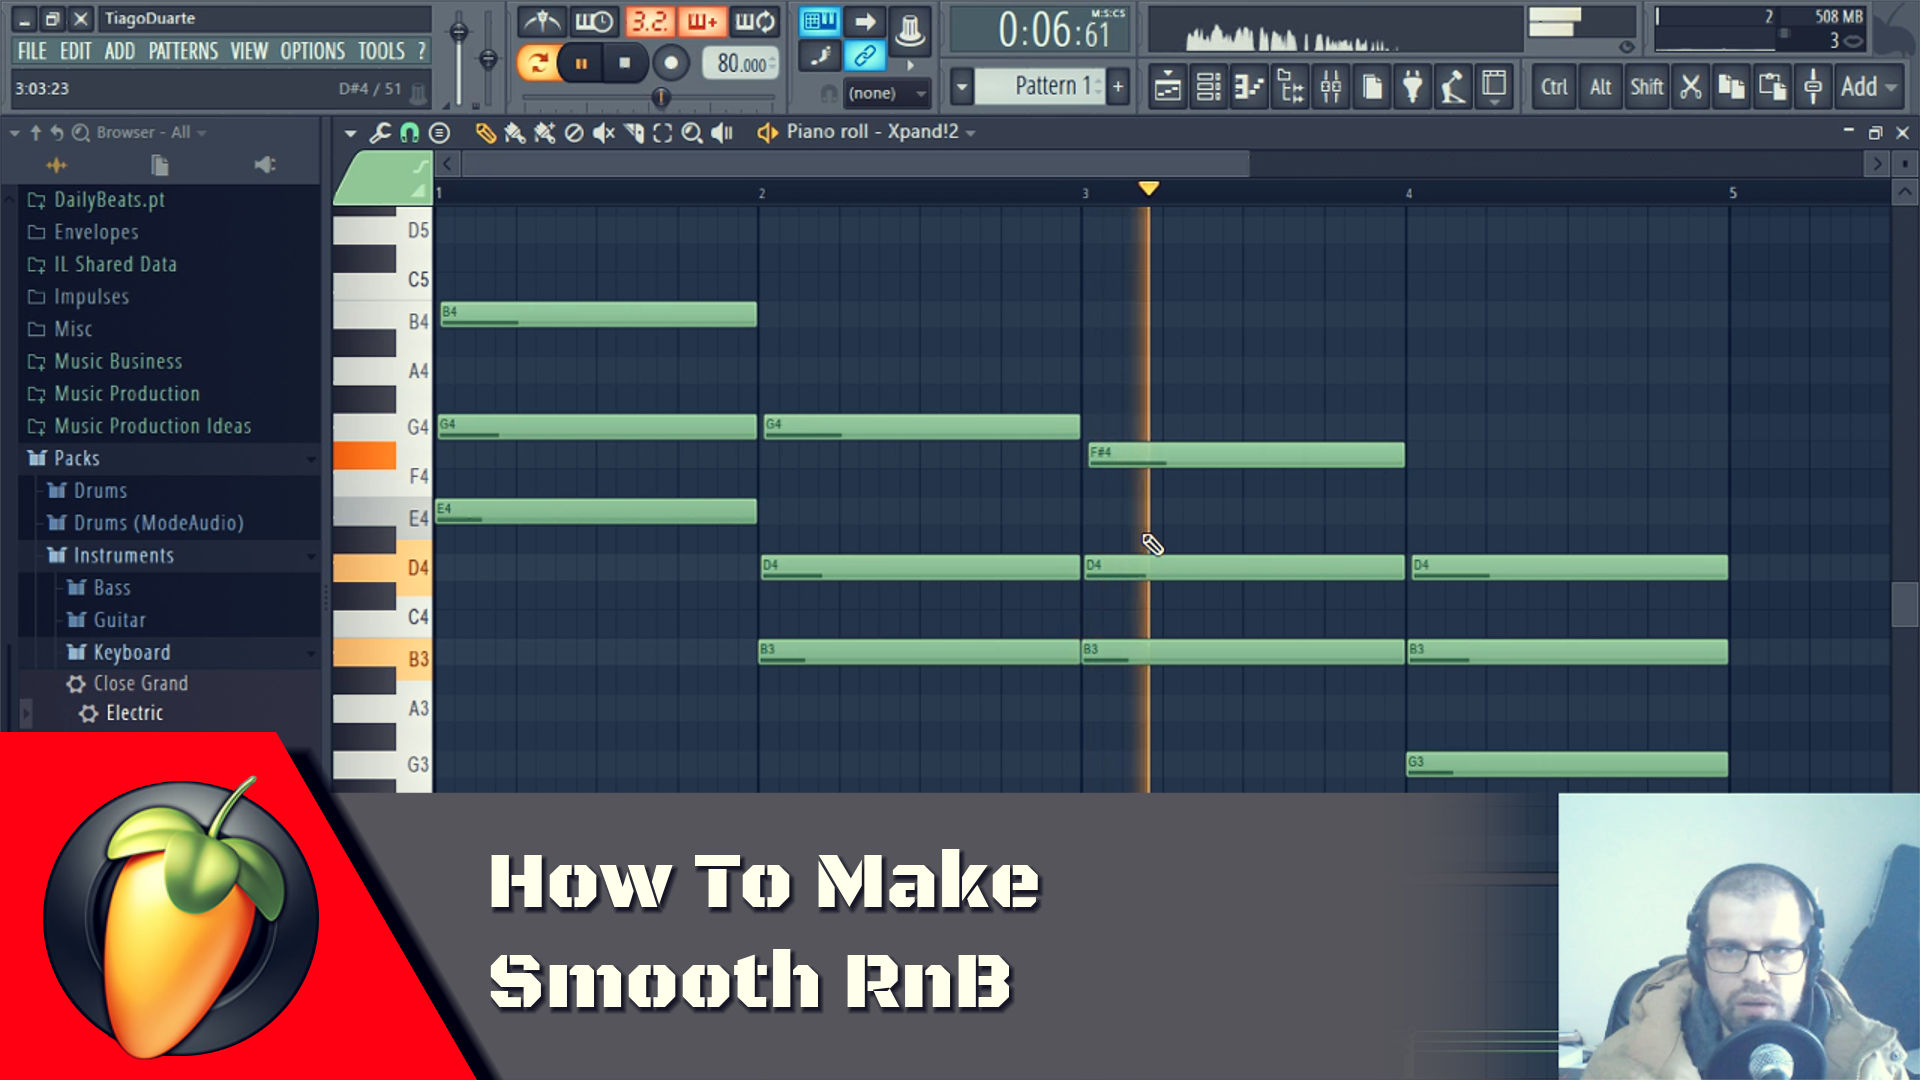 How To Make Smooth RnB